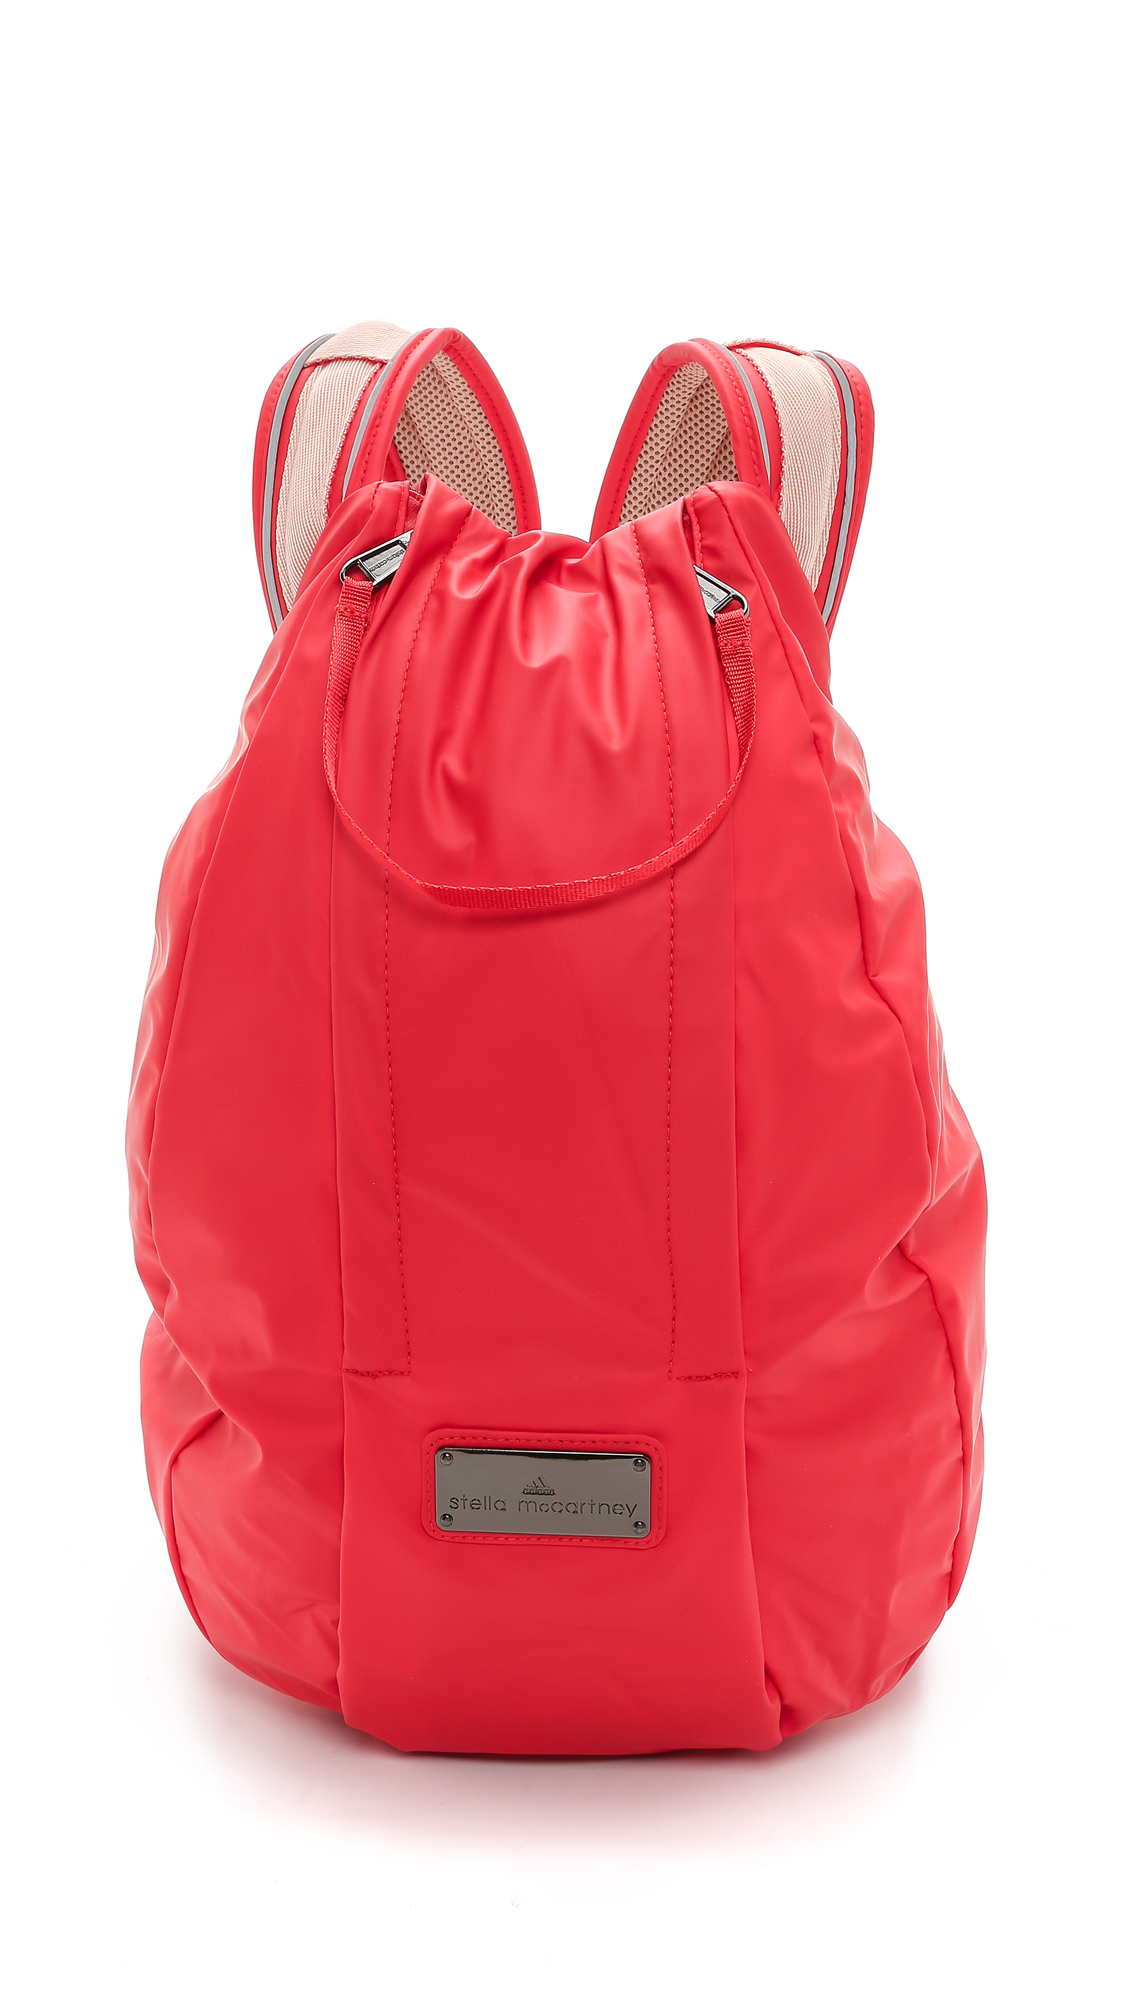 Lyst - adidas By Stella McCartney Running Cycling Backpack - Scarlet Red in  Red dd3898e8ec